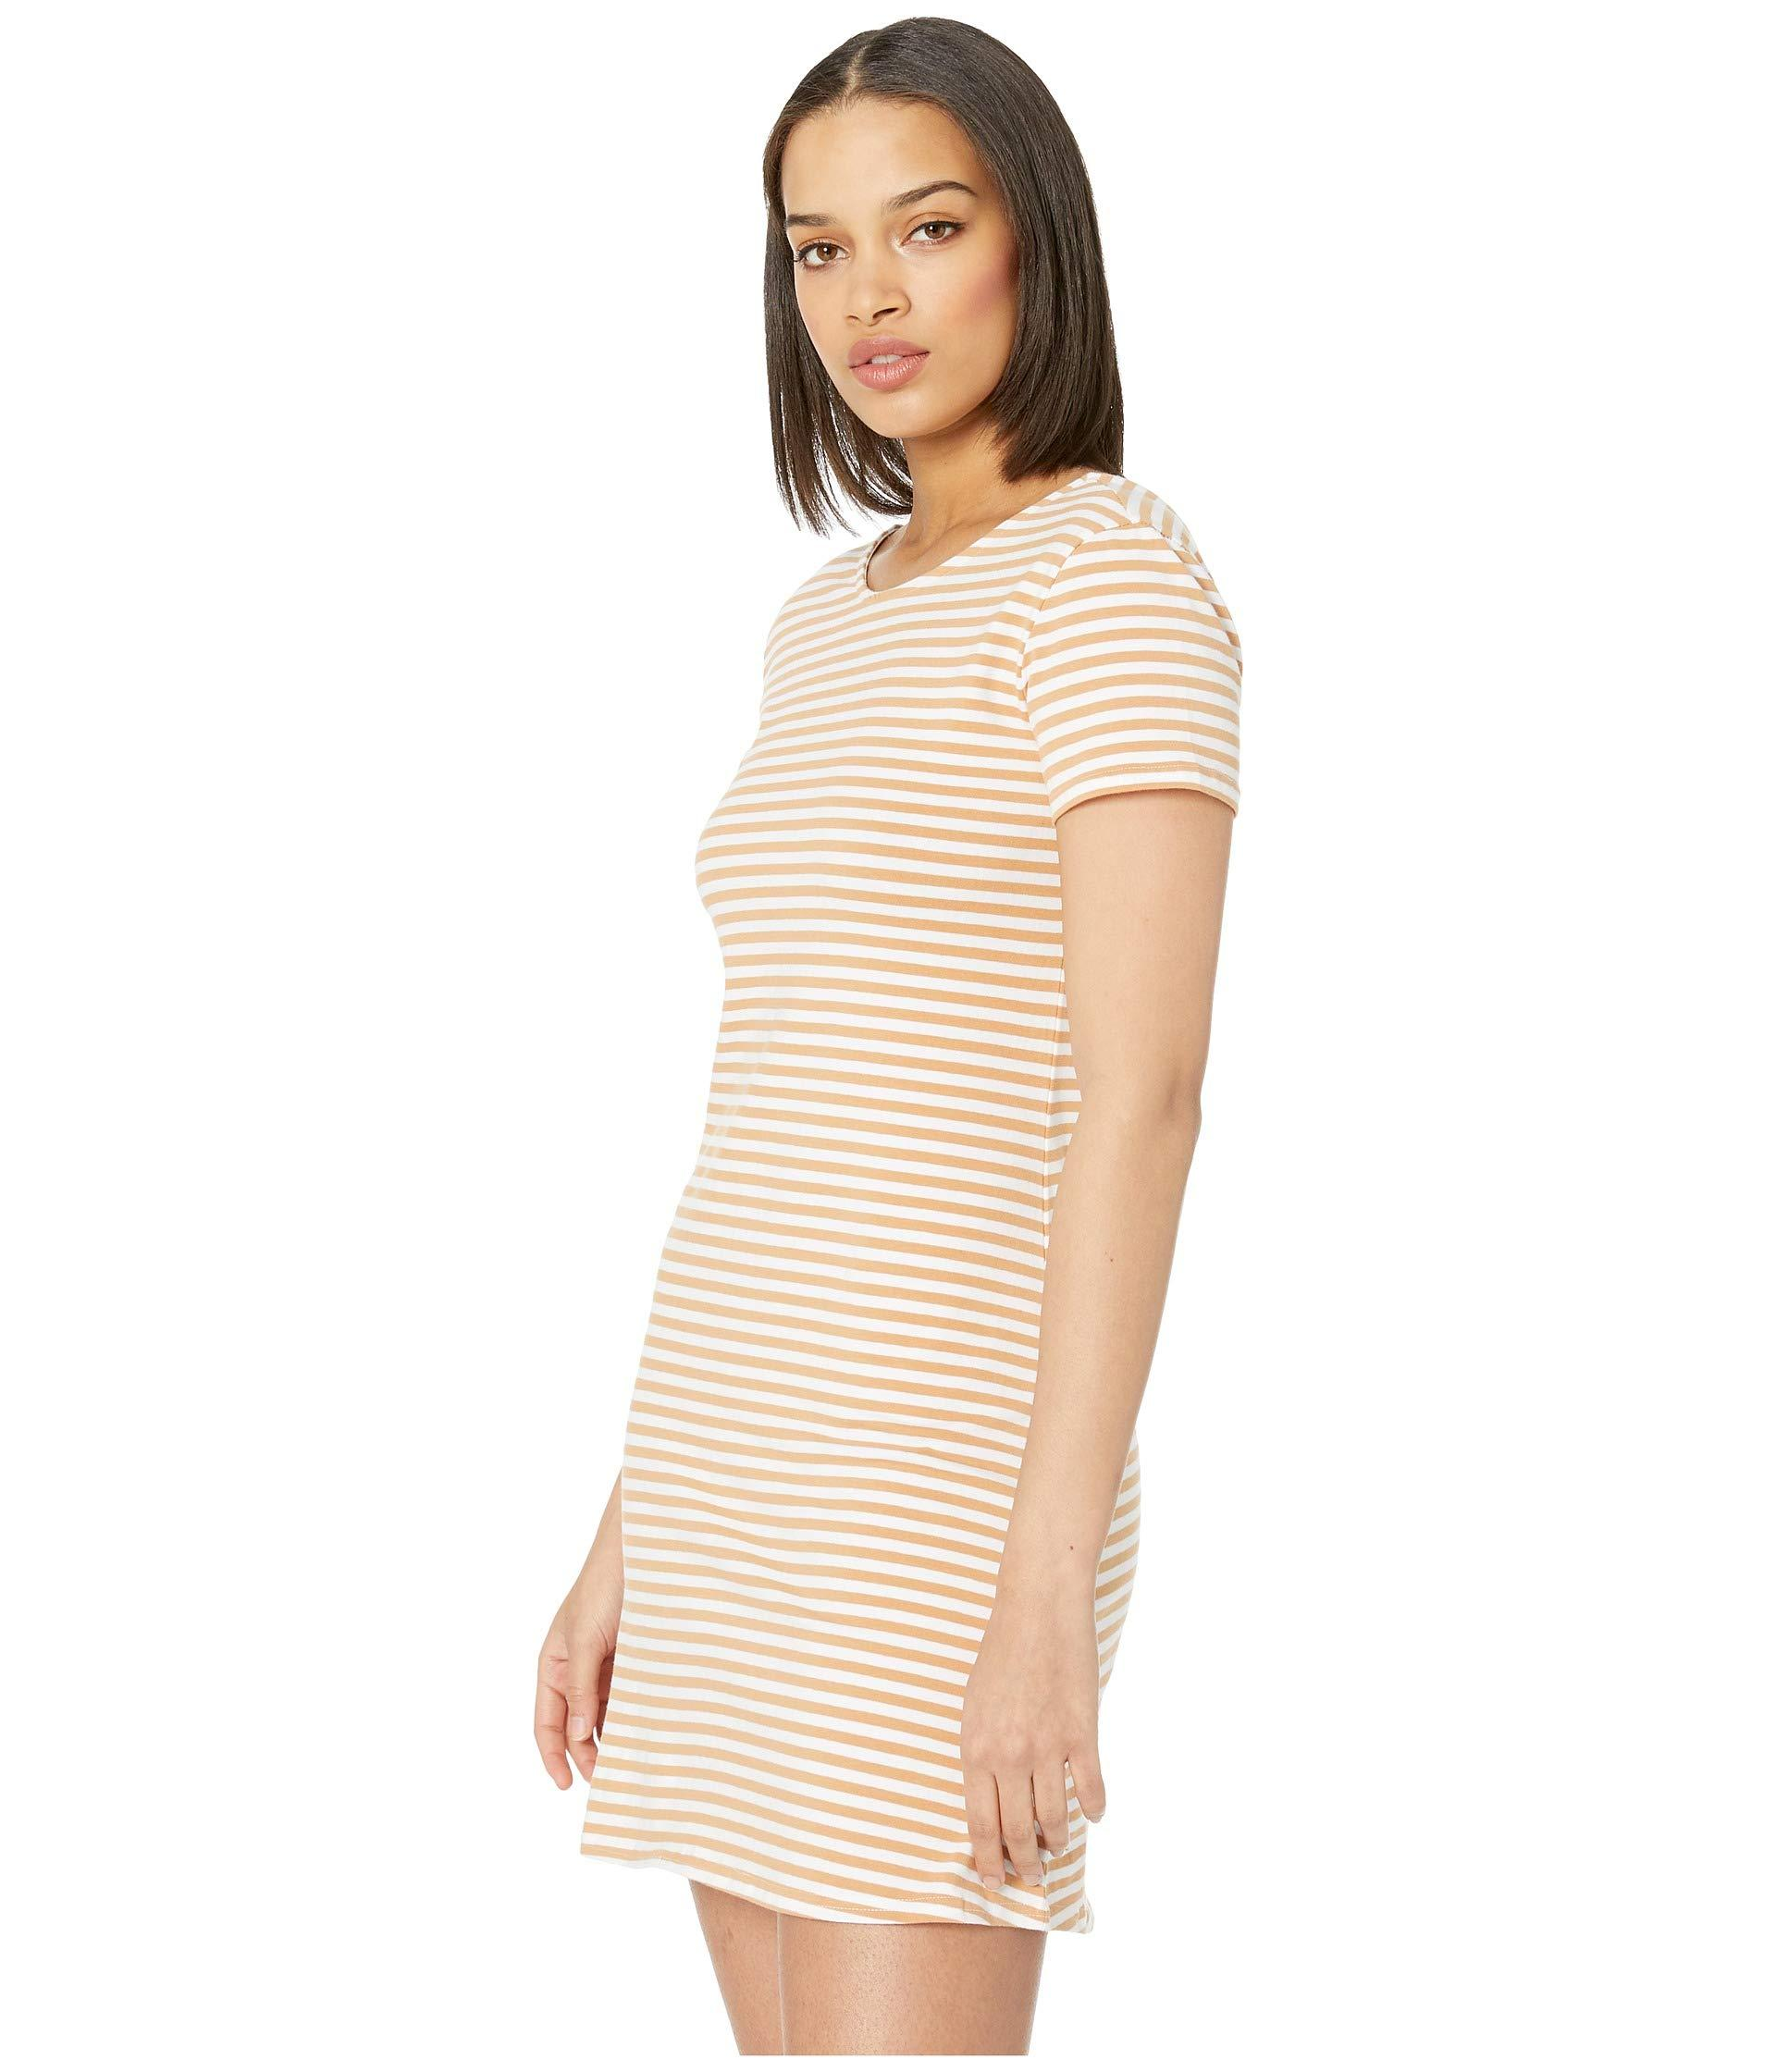 9456edb19ef Lyst - Volcom Looking Out Dress (camel) Women s Dress in Natural